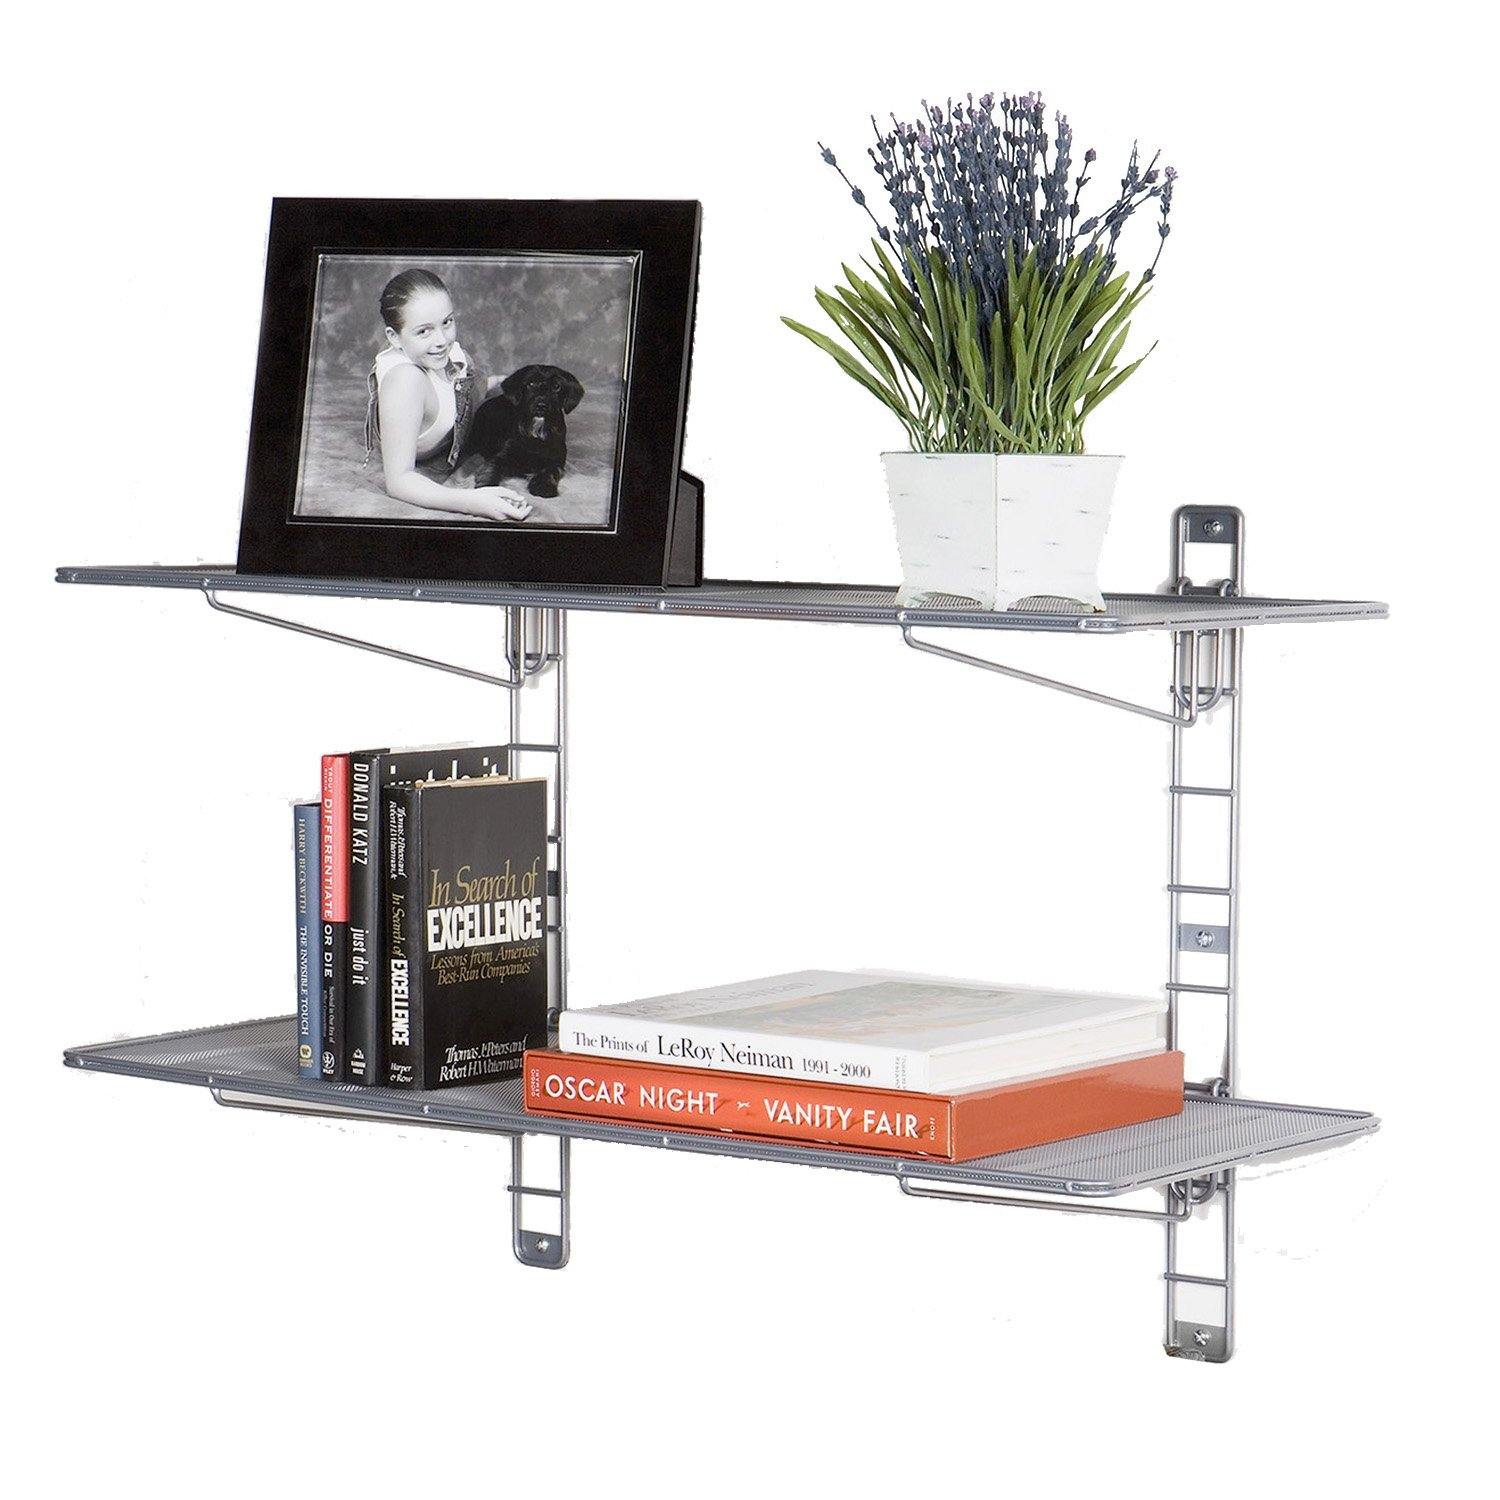 Seville Classics 2-Tier Iron Mesh Adjustable Floating Wall Shelves, 36'' x 14'', Satin Pewter by Seville Classics (Image #3)